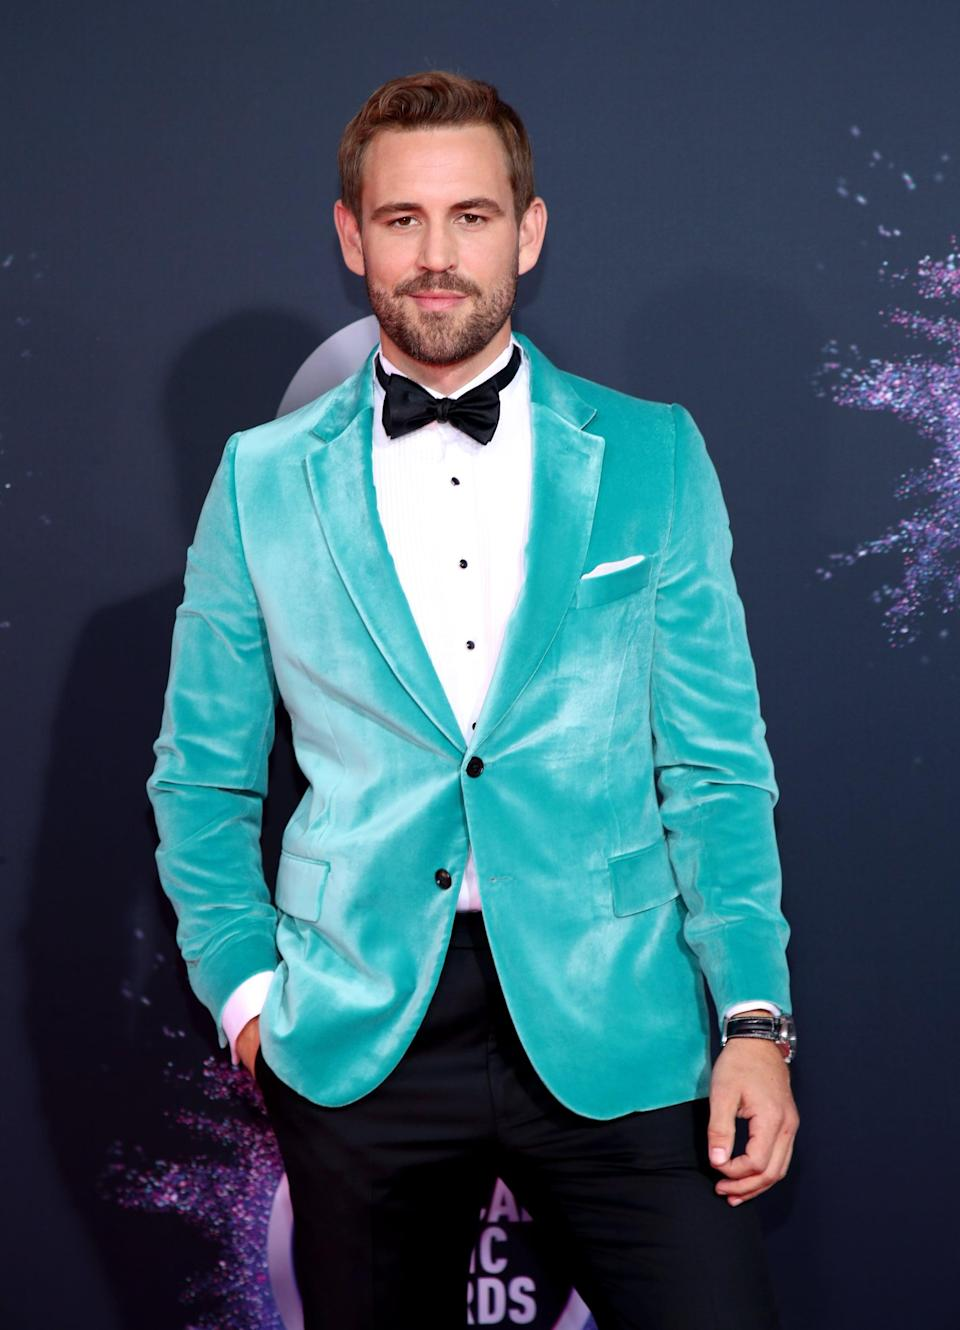 <p>Complete with a bowtie, the reality TV actor cleaned up nicely.</p>